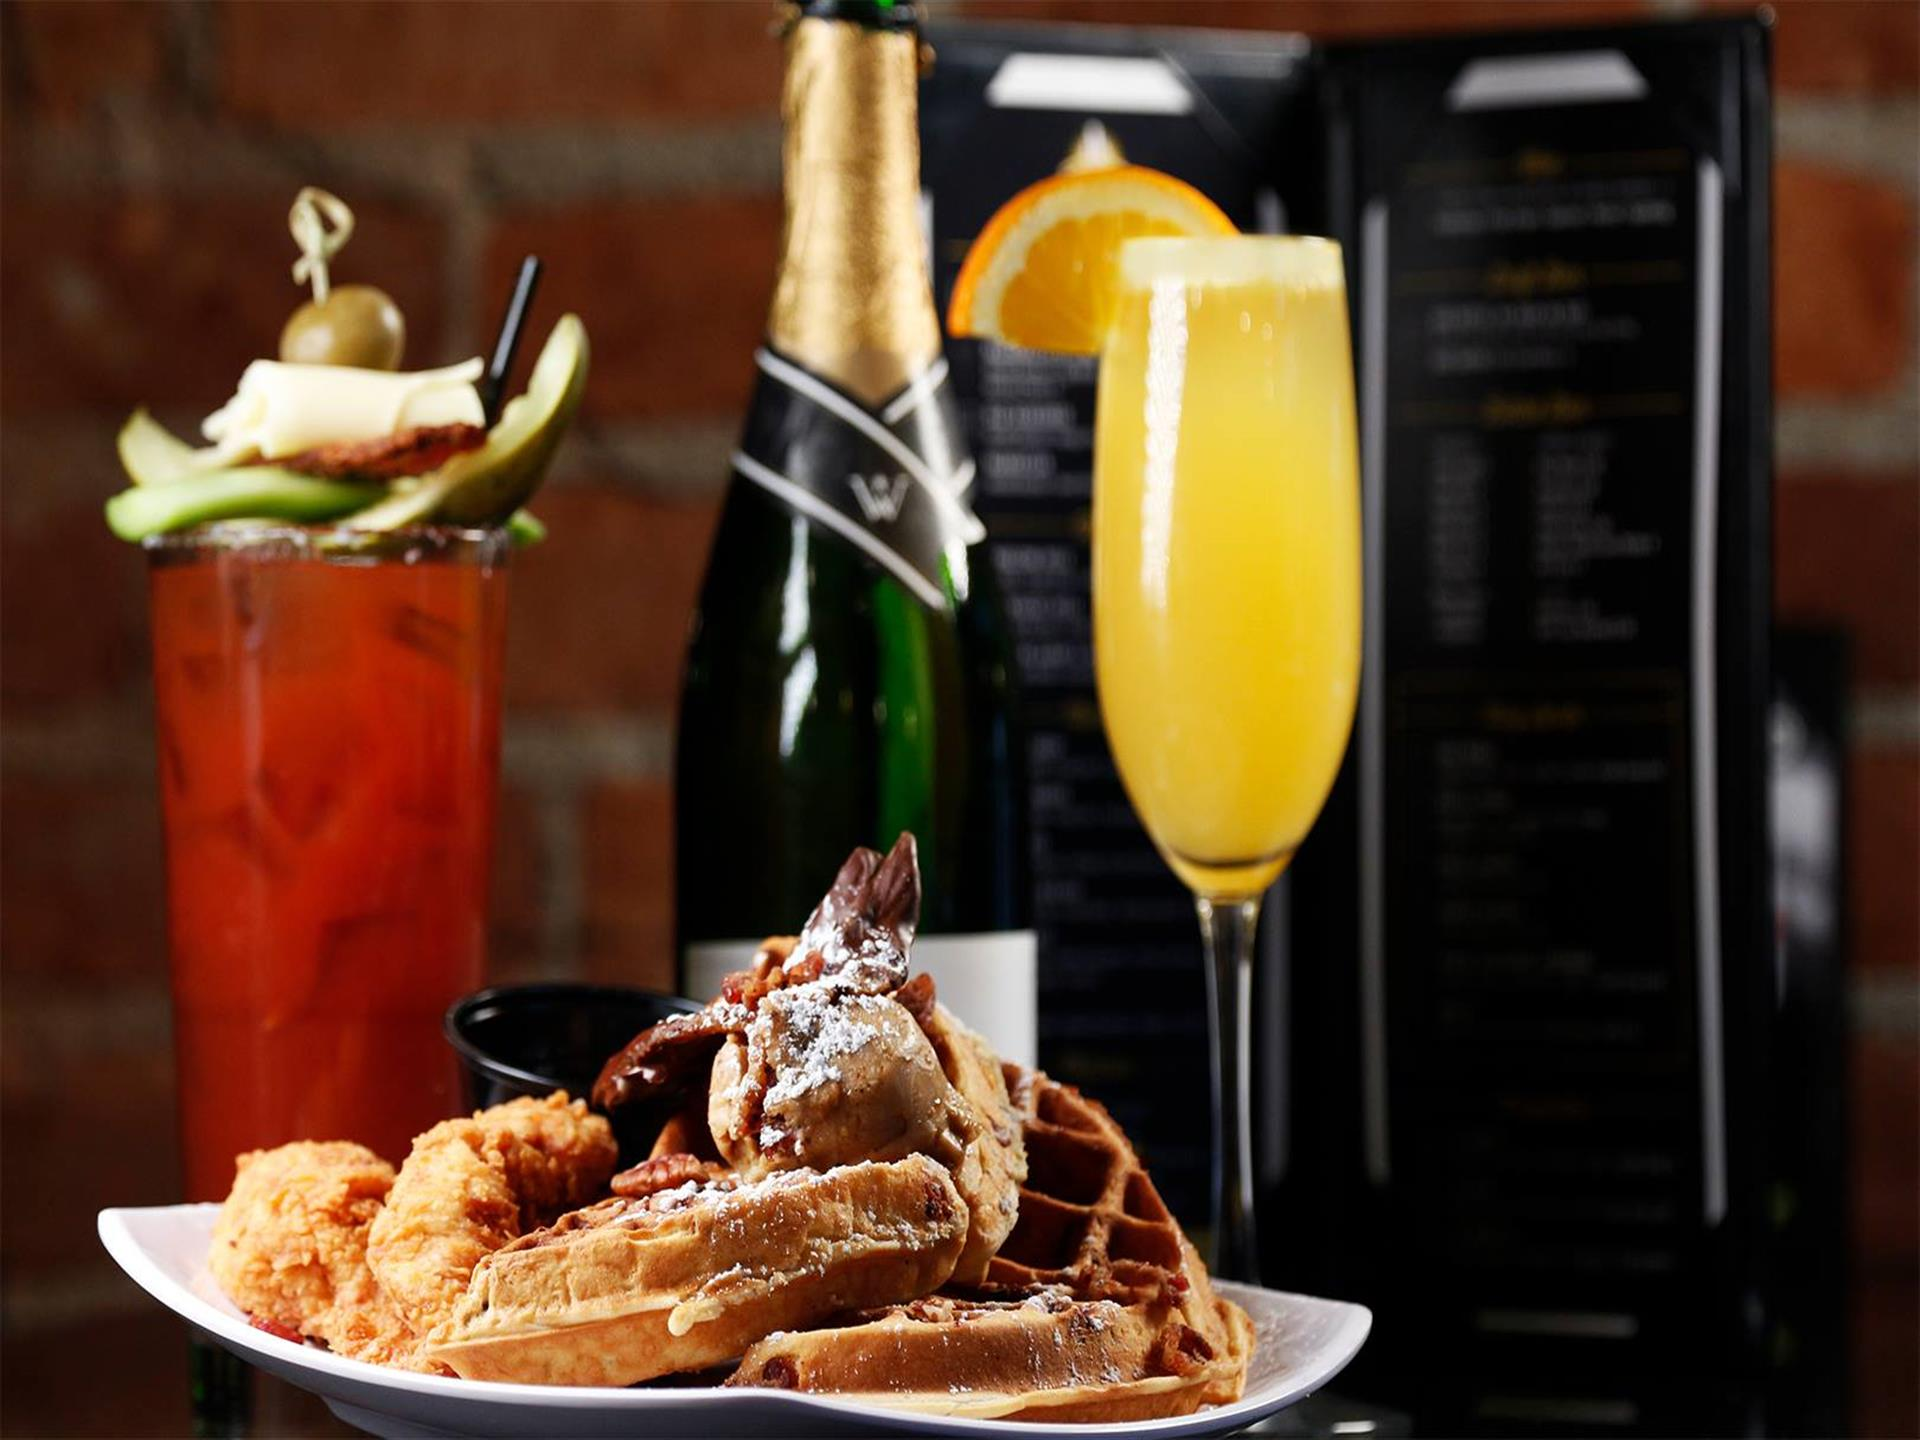 Mimosa's, Bloody Mary's, and Chicken & Waffles